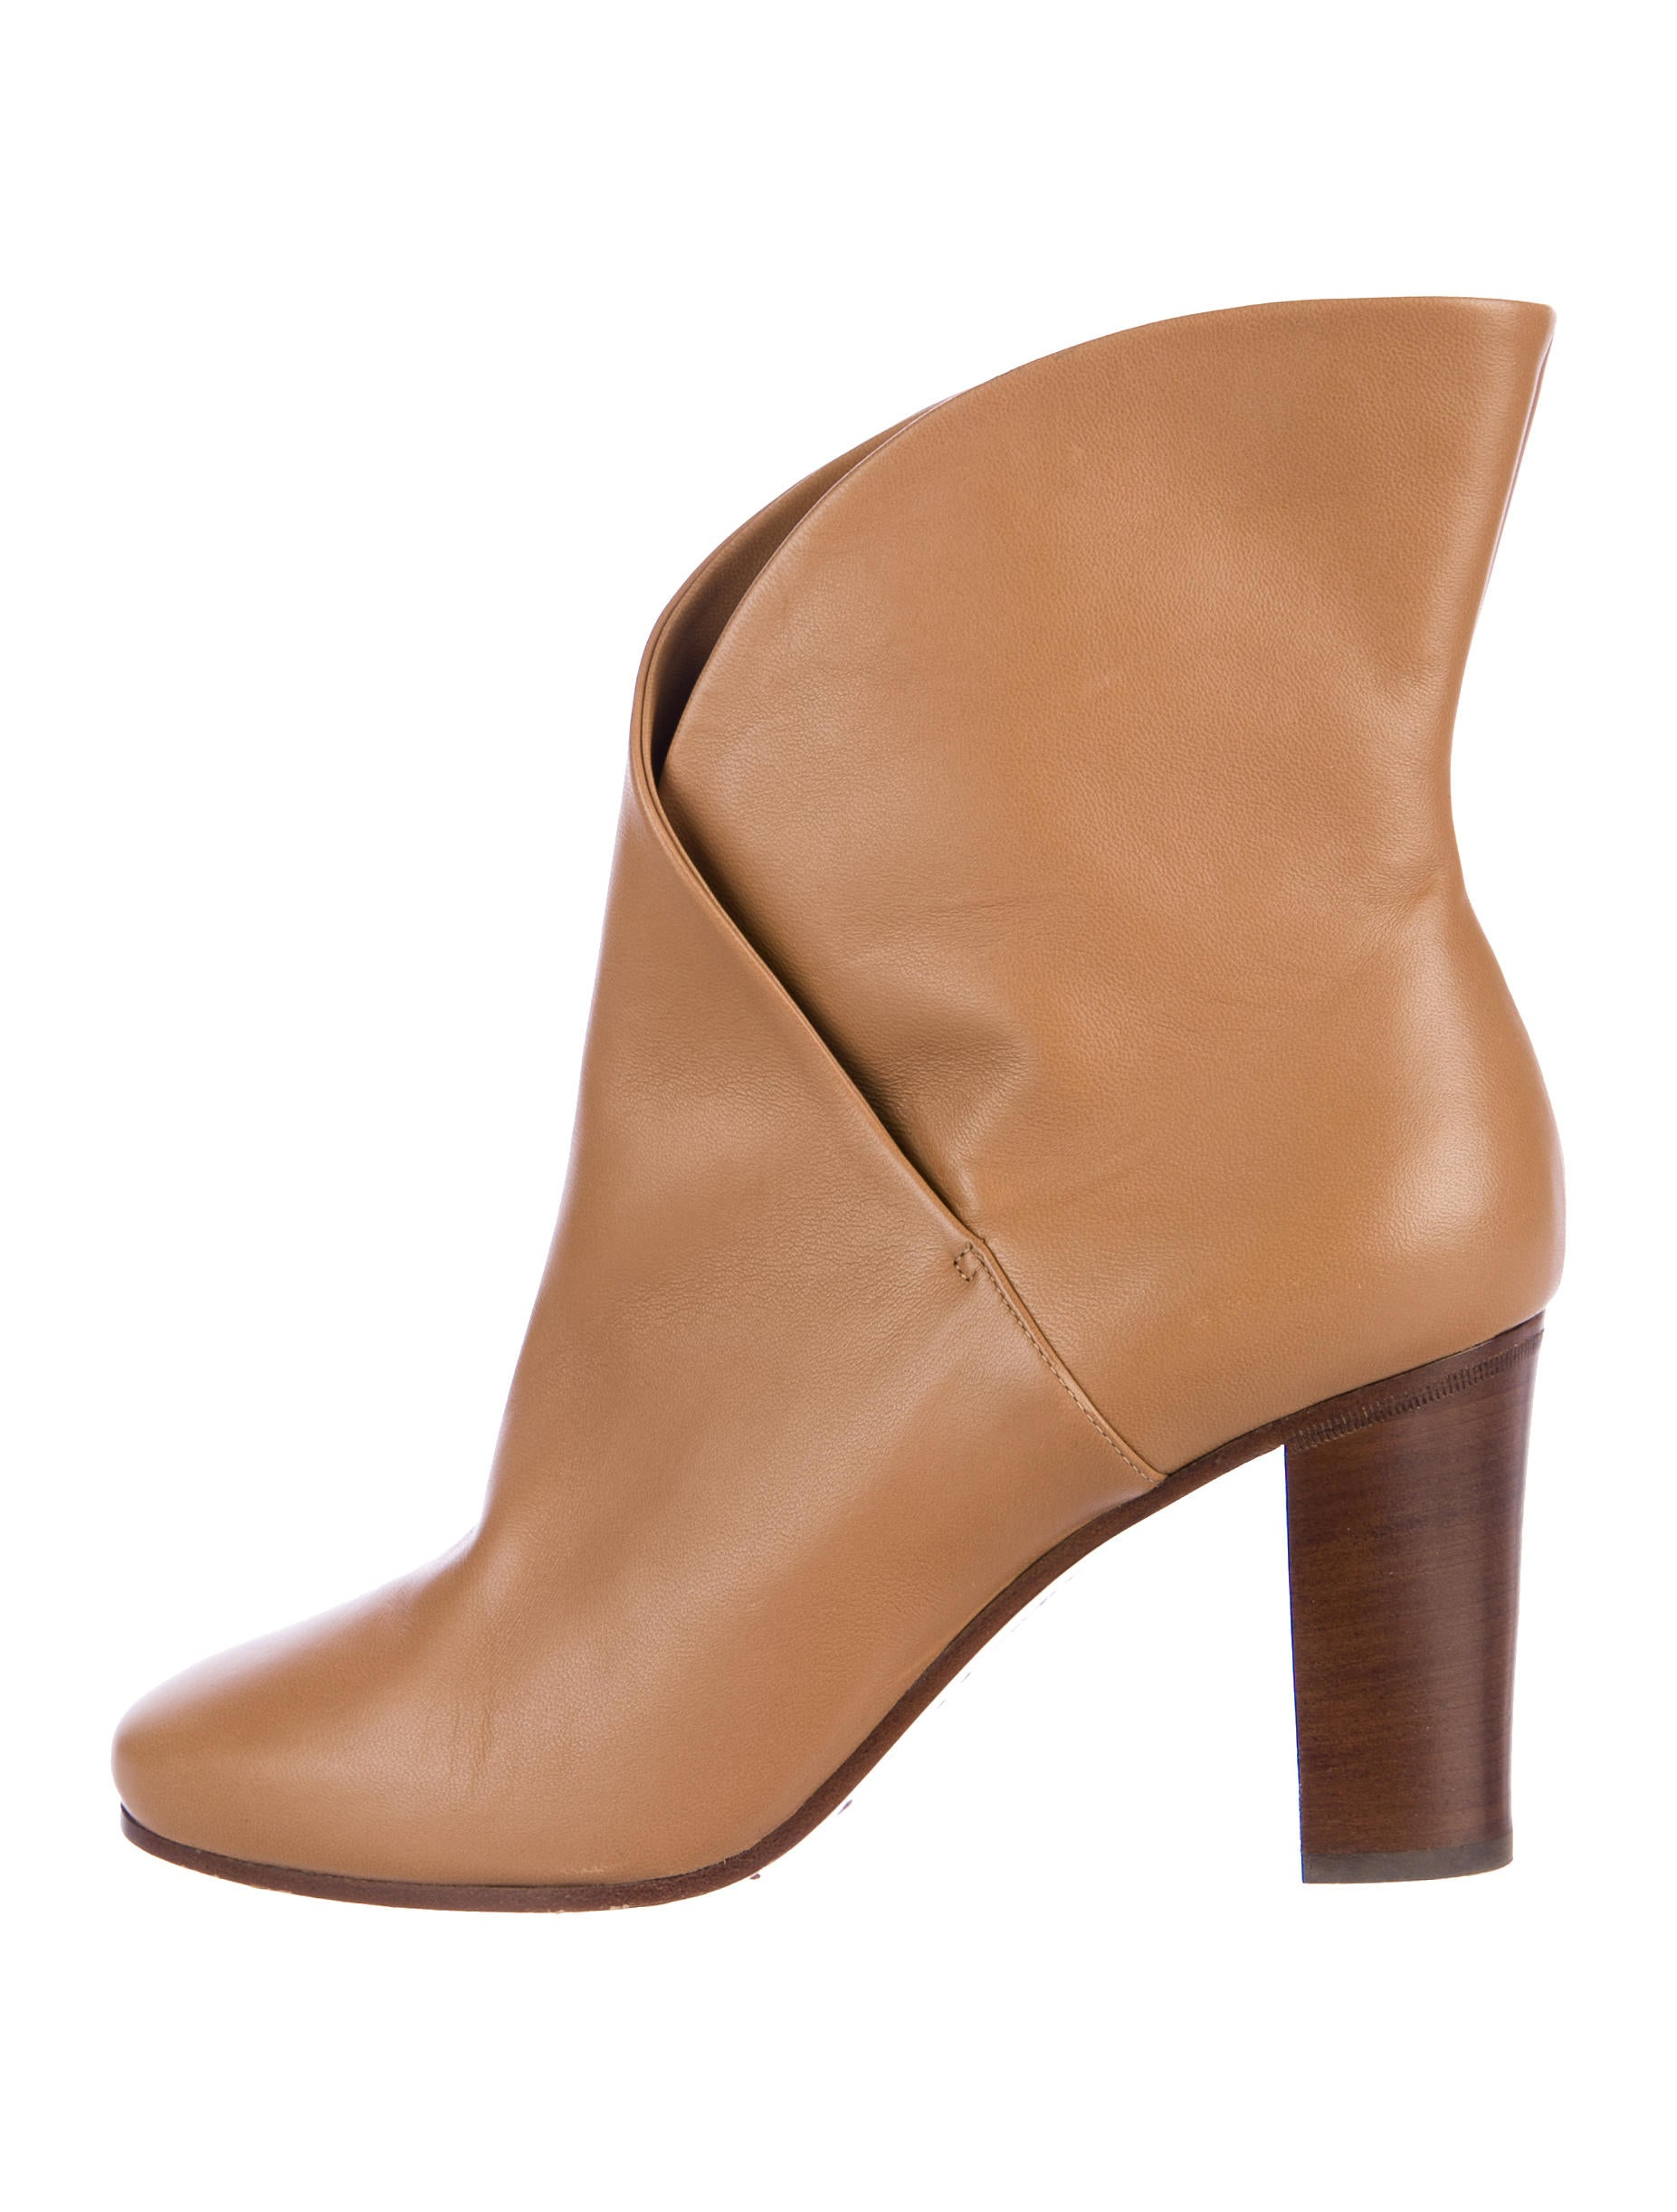 Céline Heritage Wrap 85 Boots outlet factory outlet clearance 100% authentic brand new unisex really sale online JAyC2